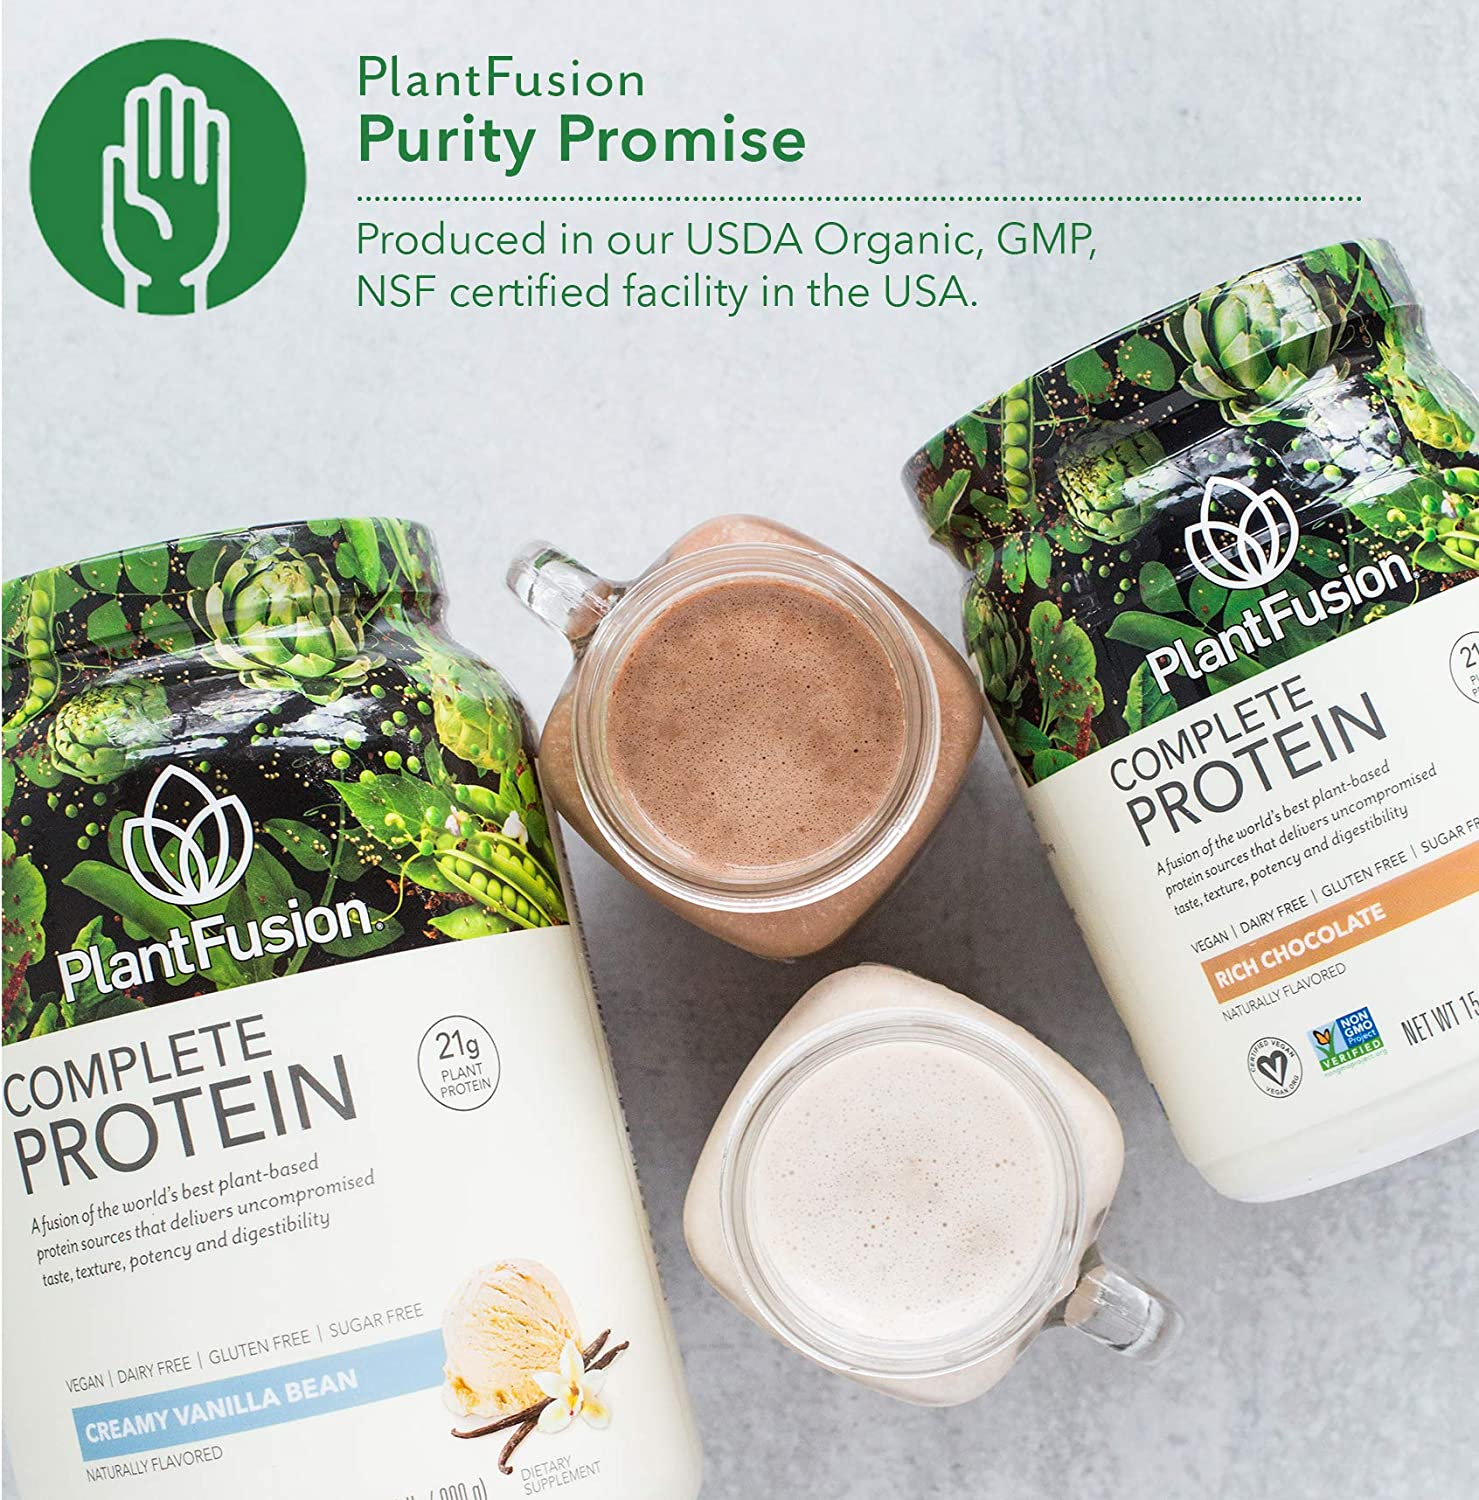 PlantFusion Complete Plant Based Pea Protein Powder, Non-GMO, Vegan, Dairy Free, Gluten Free, Soy Free, Allergy Free w/Digestive Enzymes, Dietary Supplement, Vanilla Bean (30 Servings) 2 Pound: Health & Personal Care